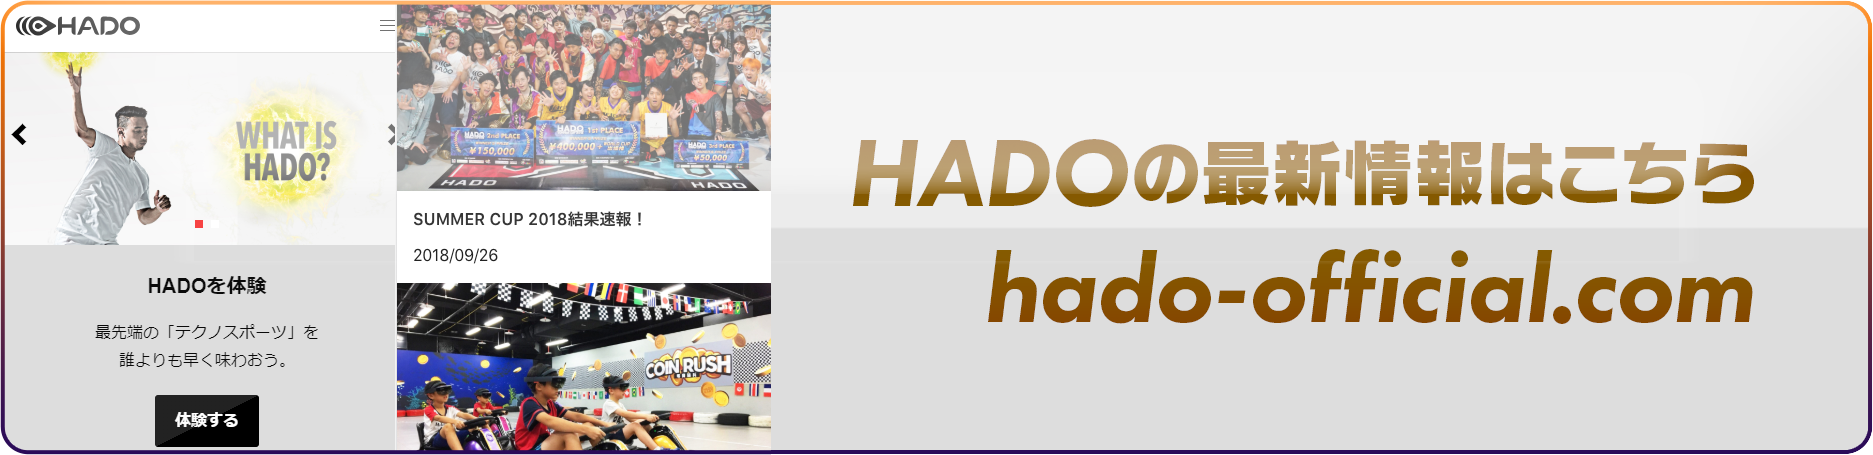 HADO OFFICIAL WEB SITE